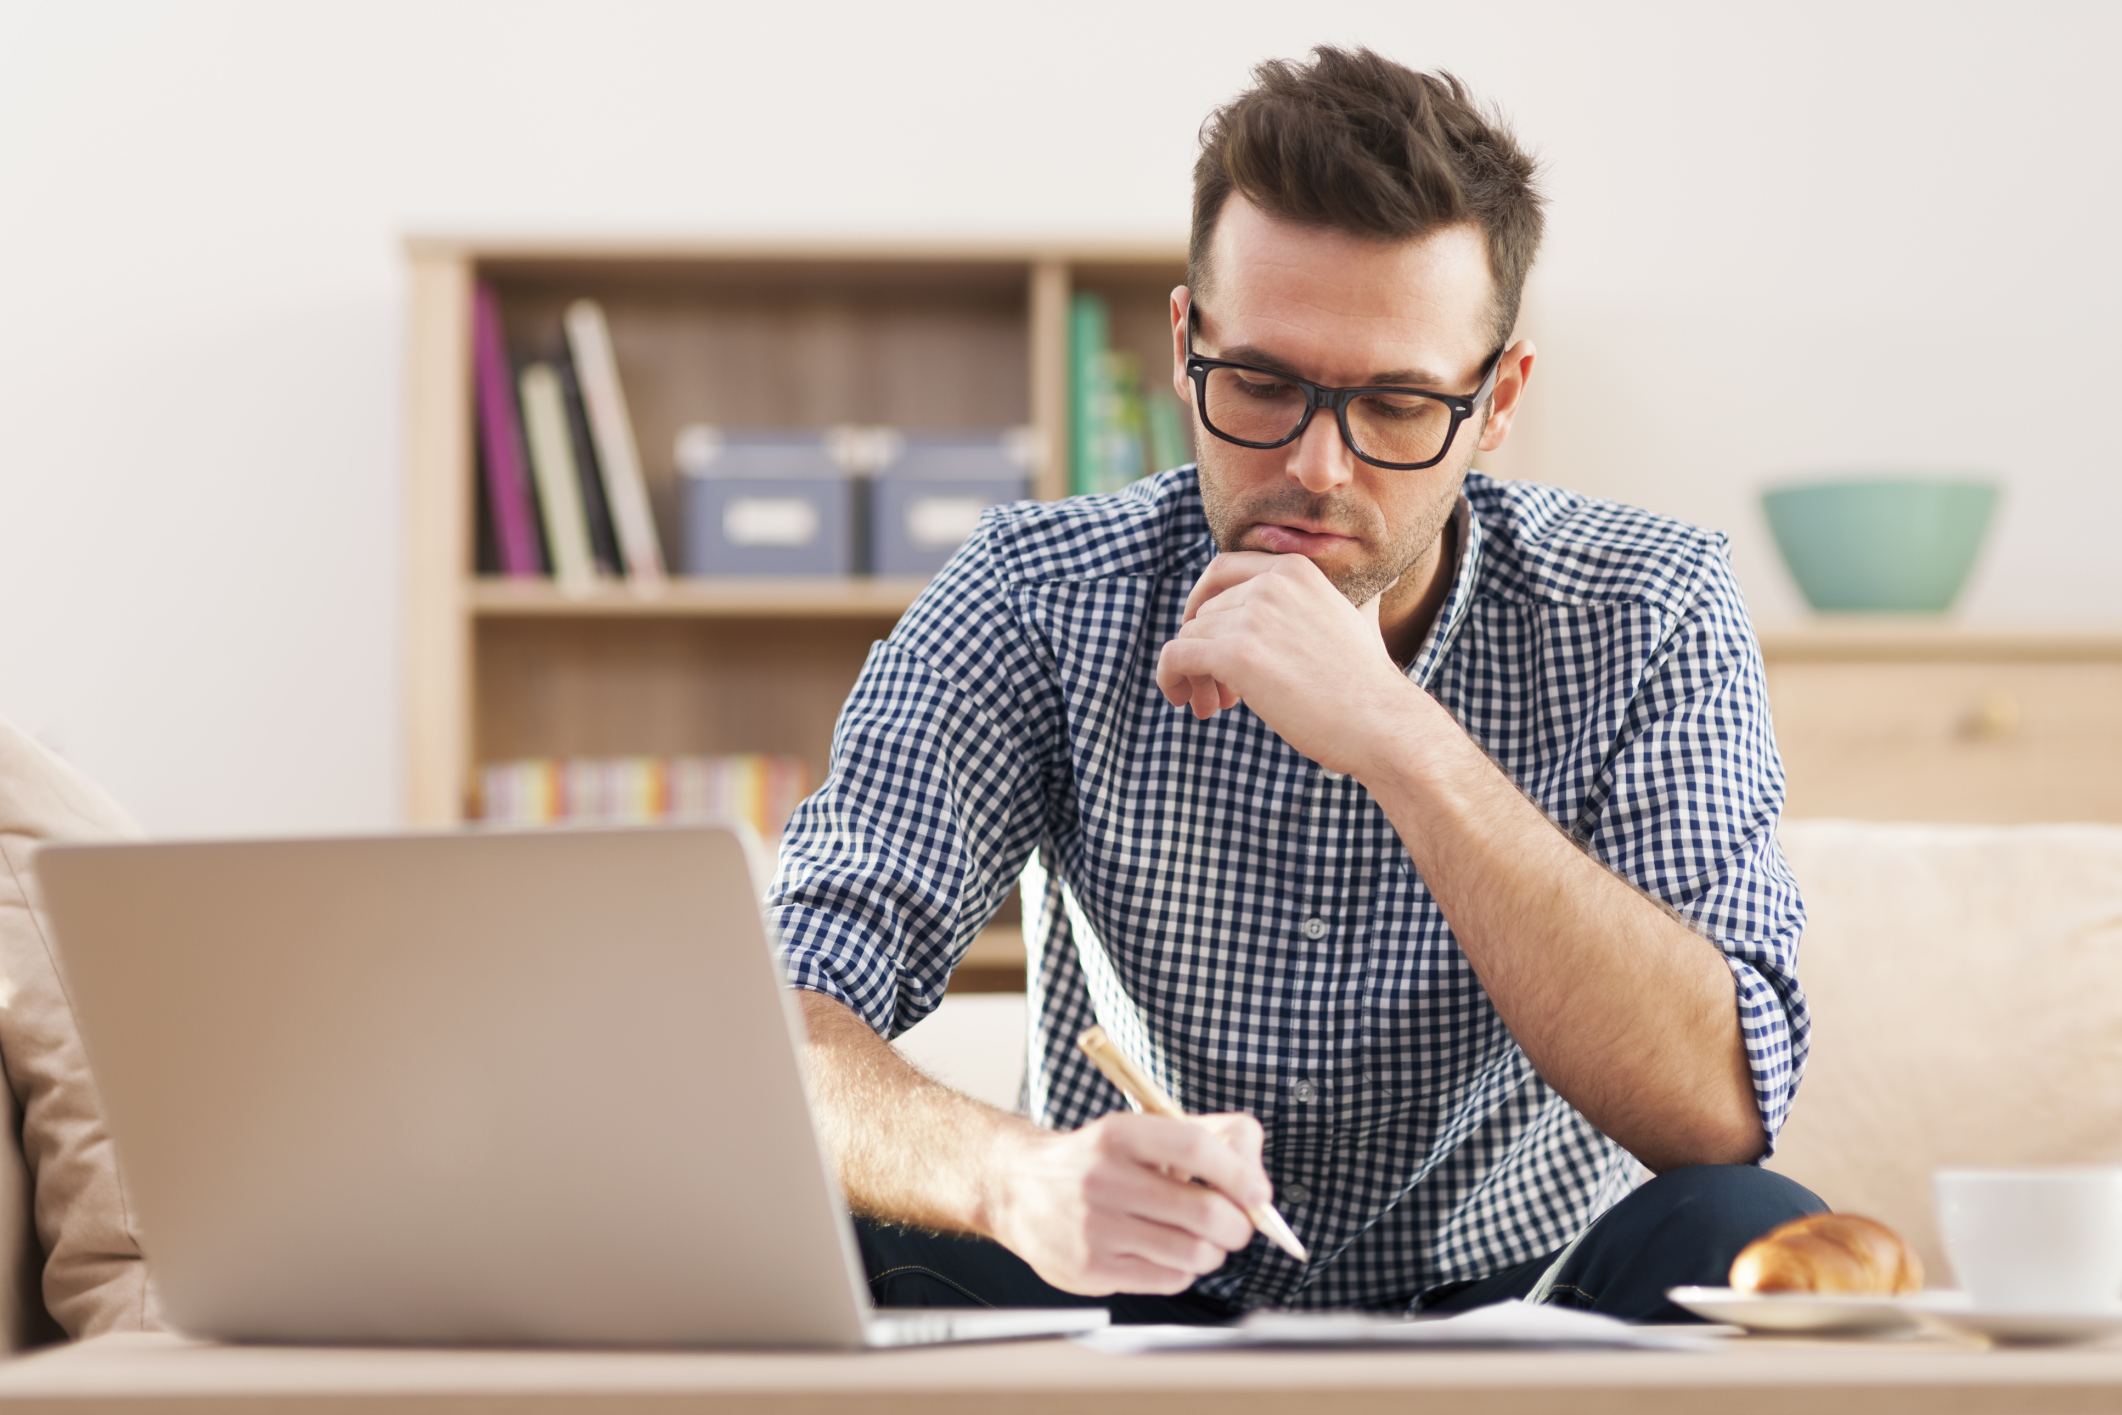 tips to improve writing for online classes online learning  5 tips to improve writing for online classes online learning lessons us news